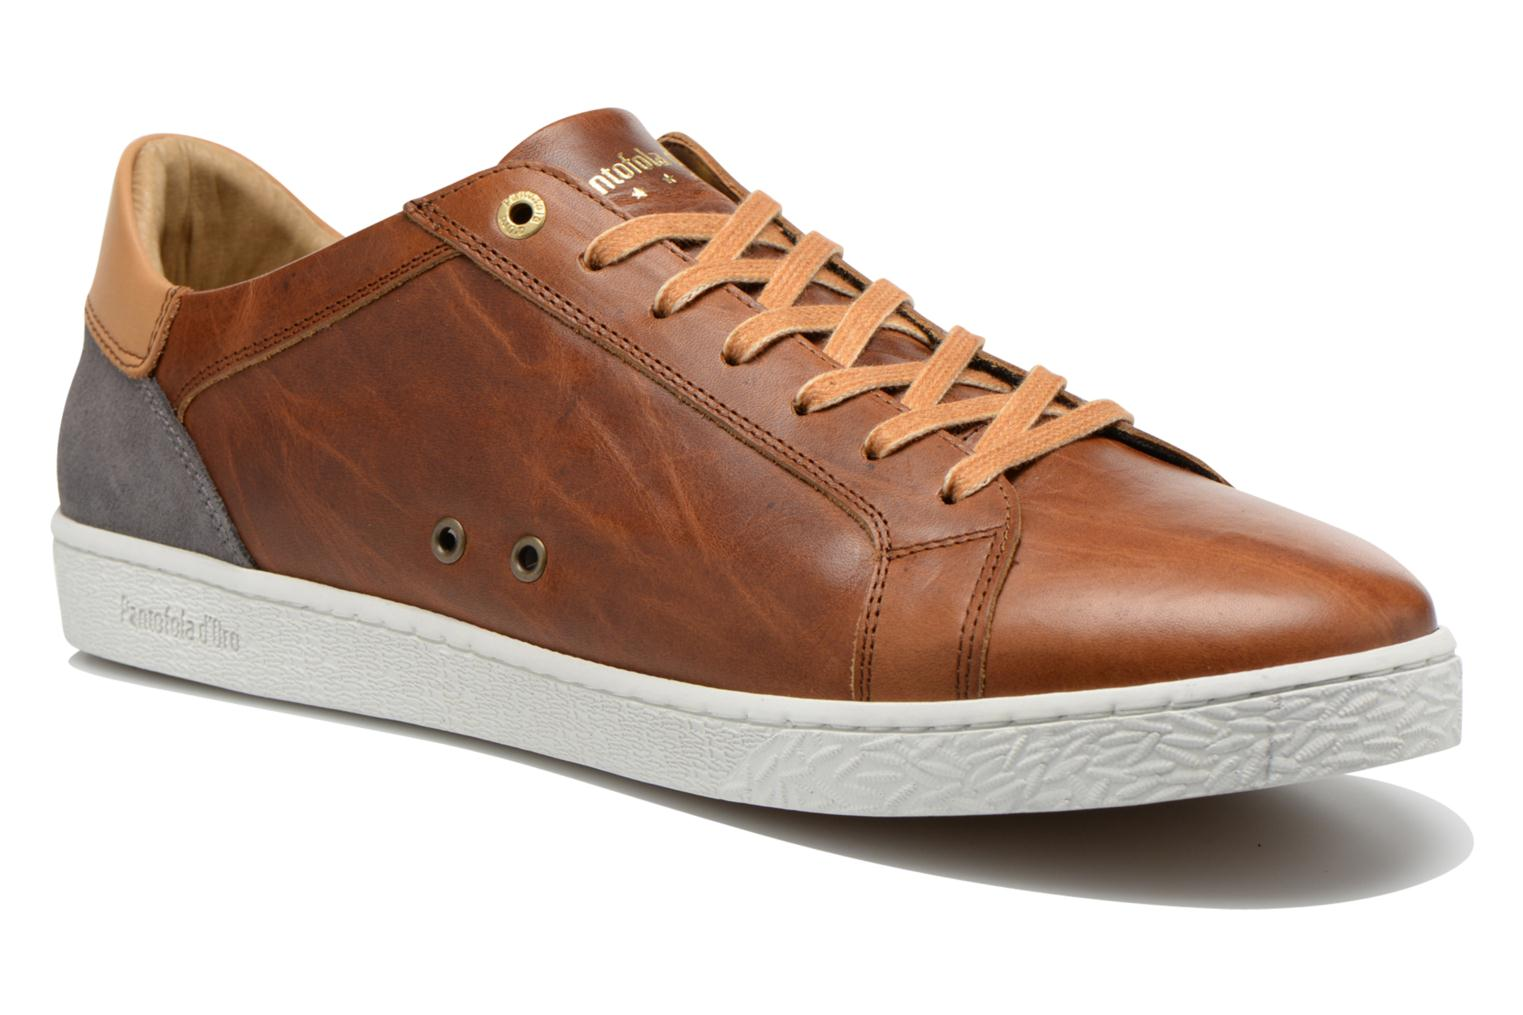 Sneakers Caltaro Low Men by Pantofola d'Oro